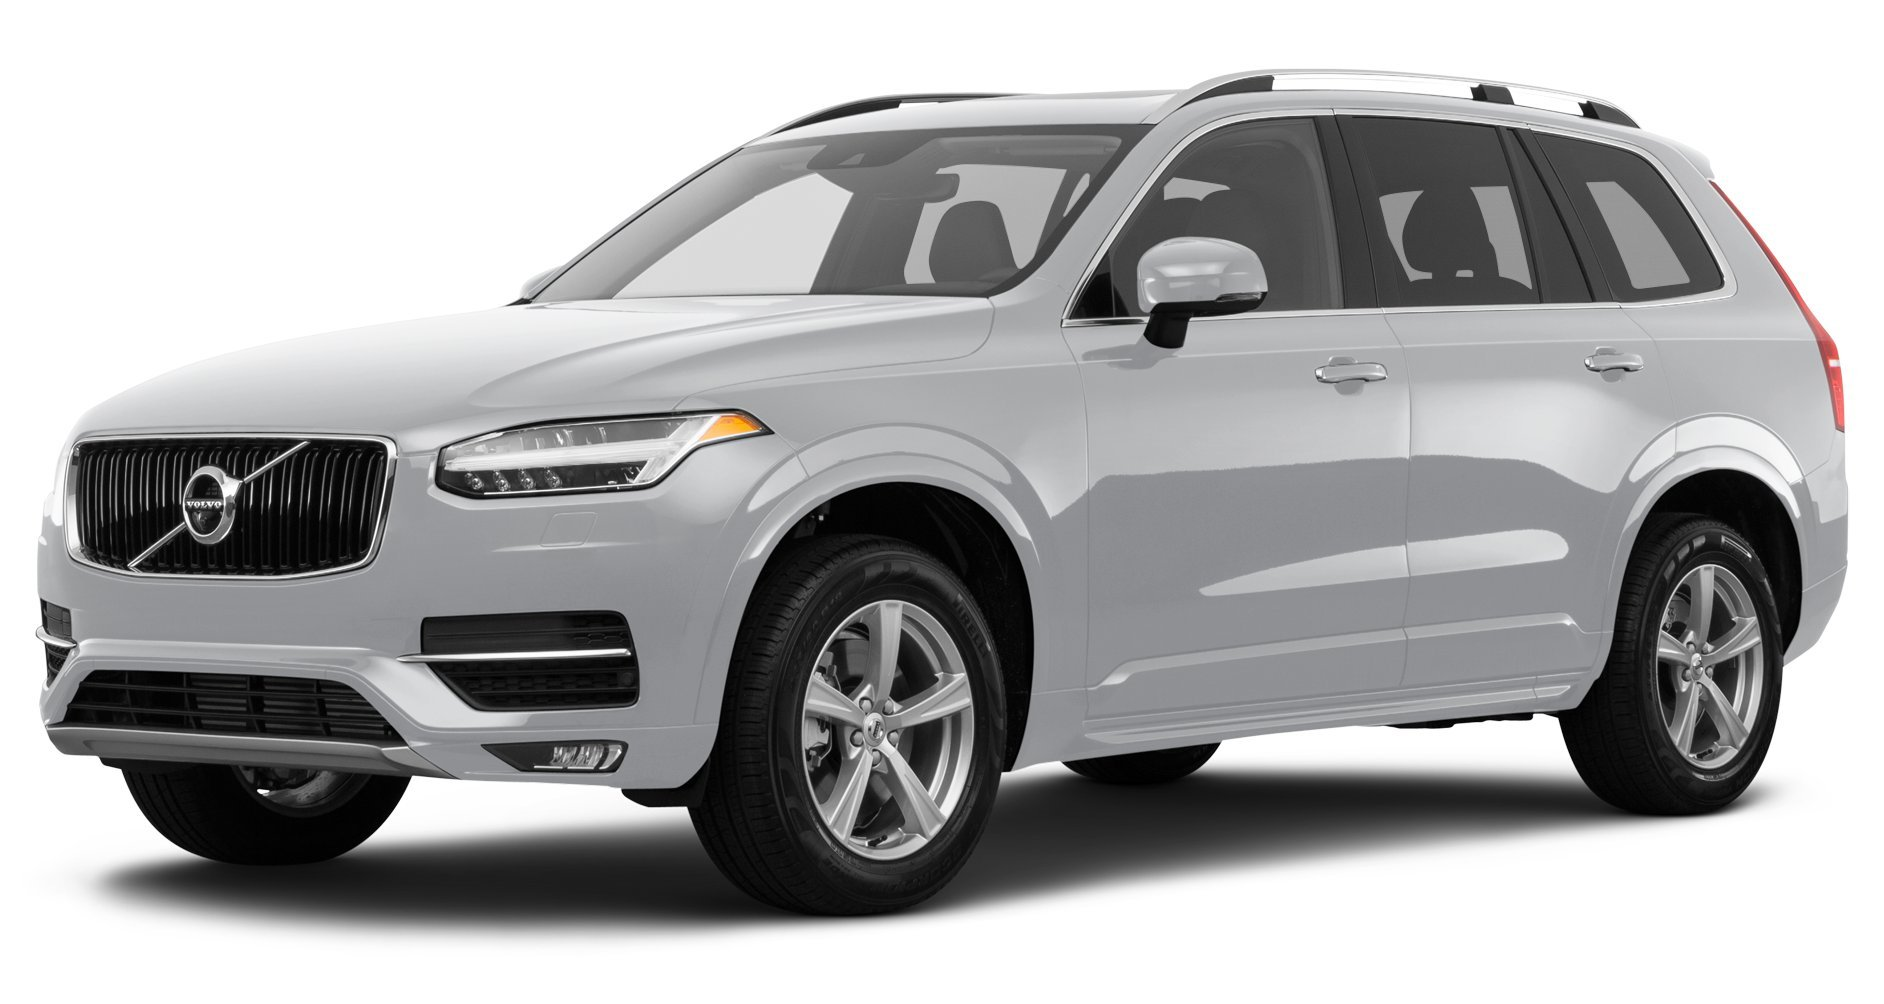 2017 volvo xc90 reviews images and specs vehicles. Black Bedroom Furniture Sets. Home Design Ideas